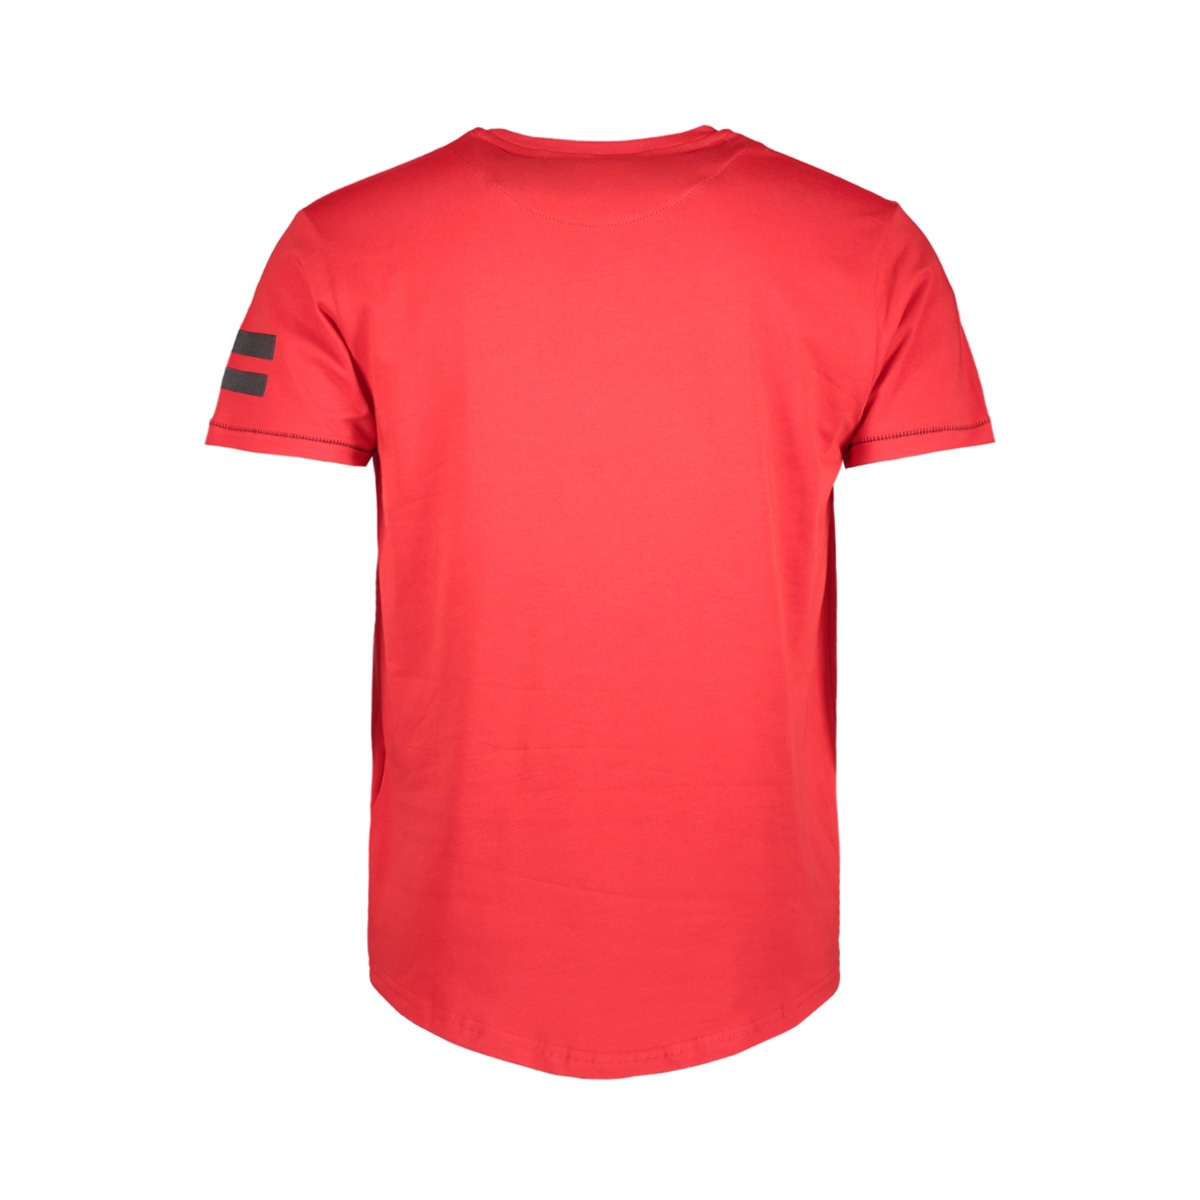 13859 gabbiano t-shirt red